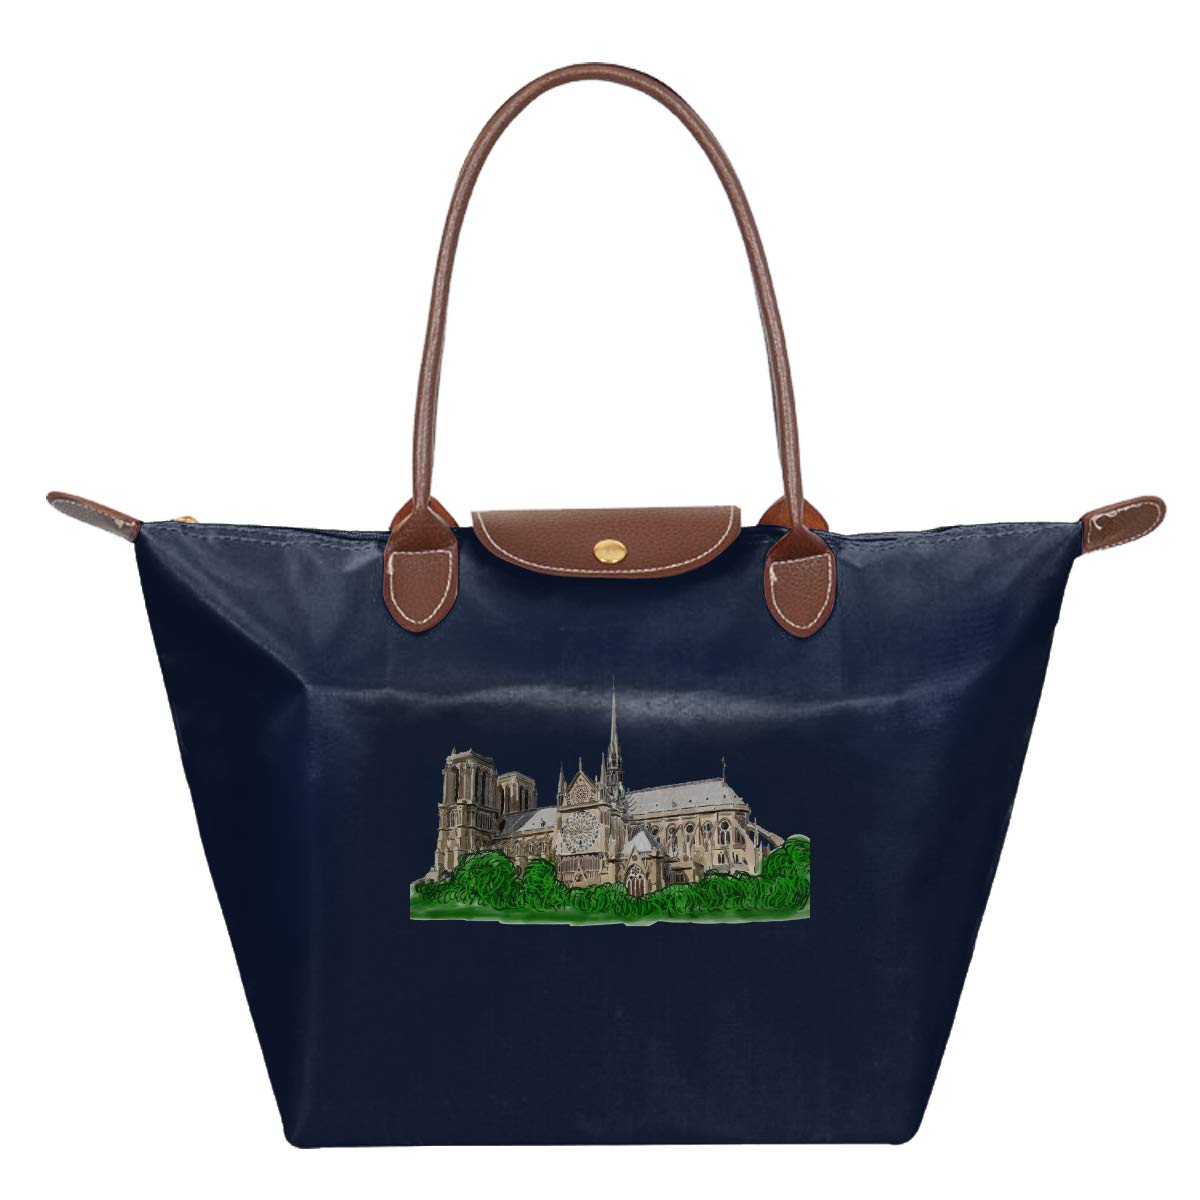 Notre Dame Cathedral I Love Cath/édrale Notre-Dame De Paris In Memory Rise From The Ashes Waterproof Leather Folded Messenger Nylon Bag Travel Tote Hopping Folding School Handbags